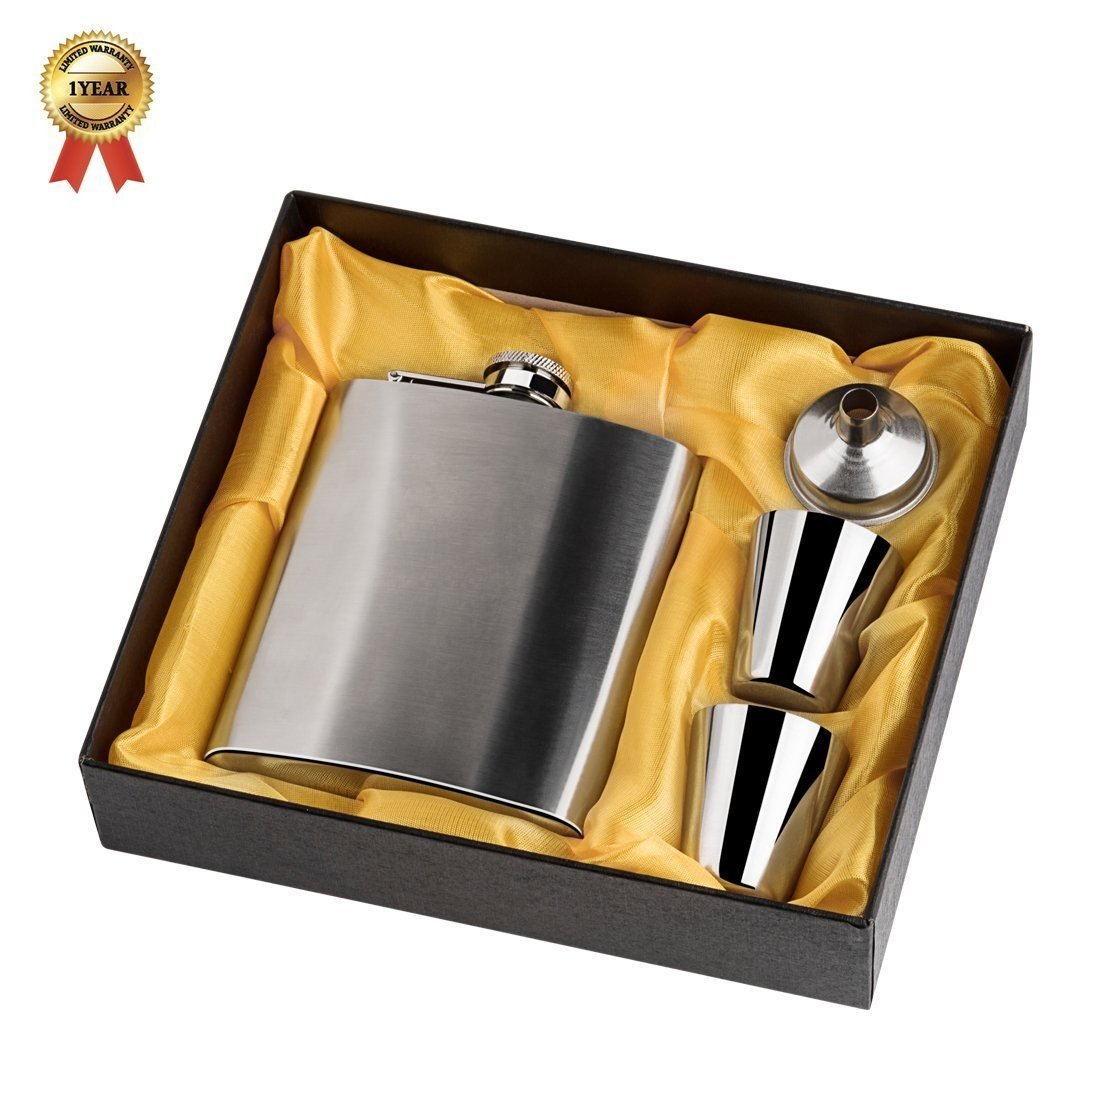 KoKeo_Store Stainless Steel Hip Flask Set with Gift Box 7oz 196ml Hip Flask with Funnel & Shot Cups Stainless Steel Hip Flask Portable Flagon Wine Bottle for Liquor/Wine/Whiskey (Silver)